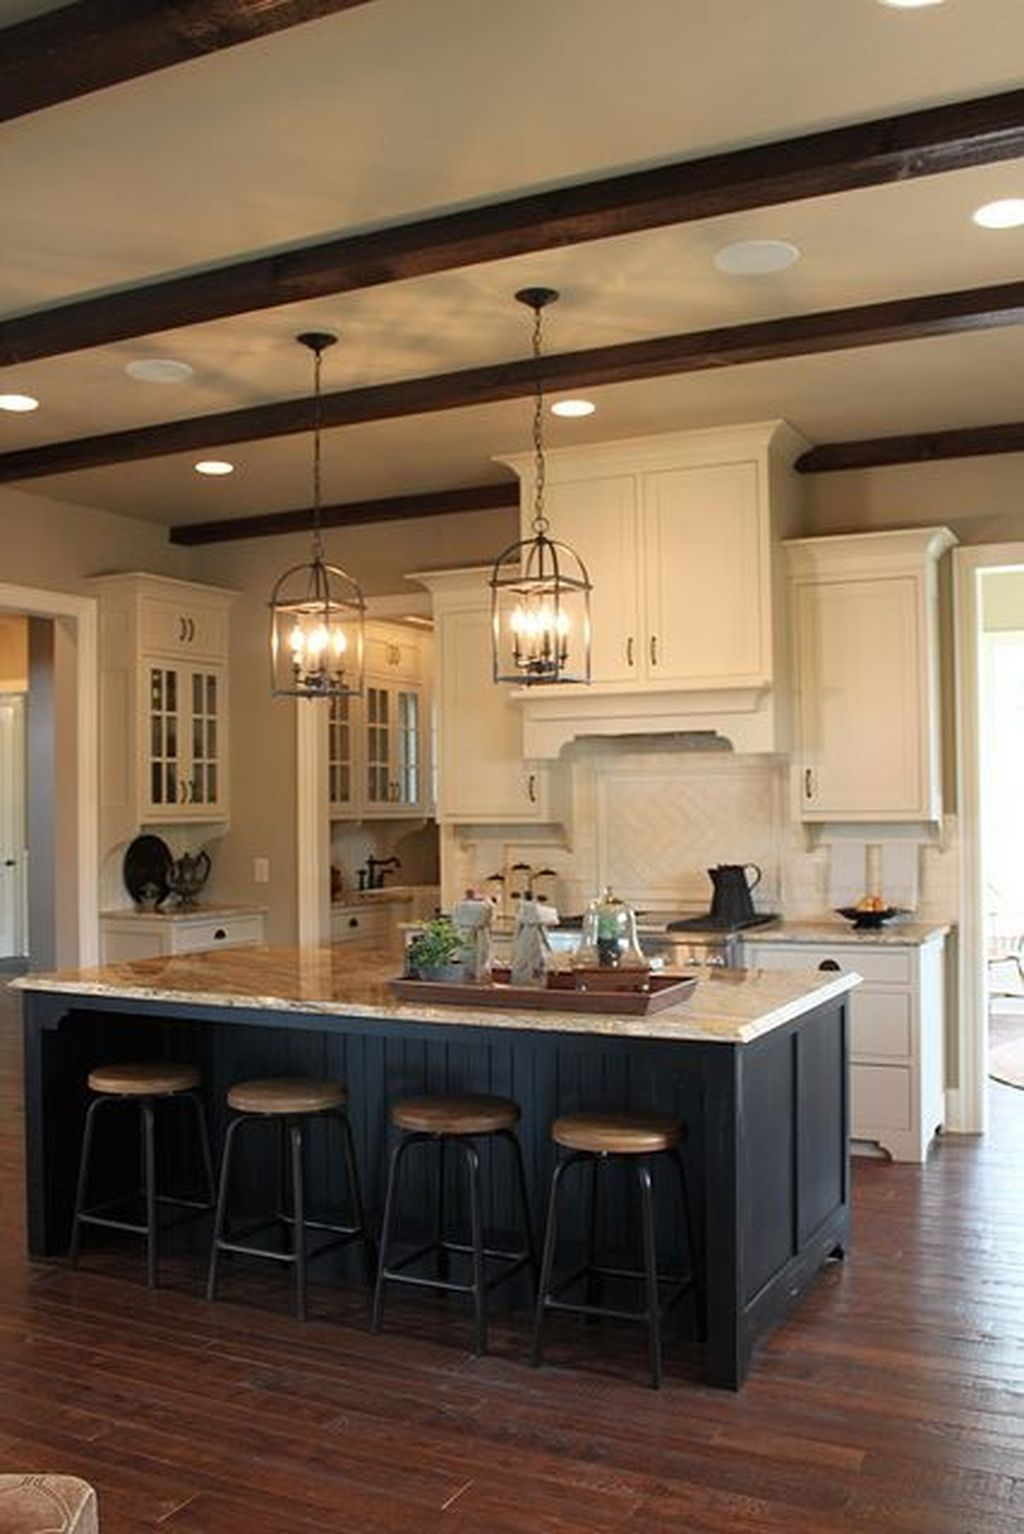 Awesome 99 Affordable Black And White Kitchen Cabinets Ideas Rustic Kitchen Kitchen Remodel Kitchen Inspirations